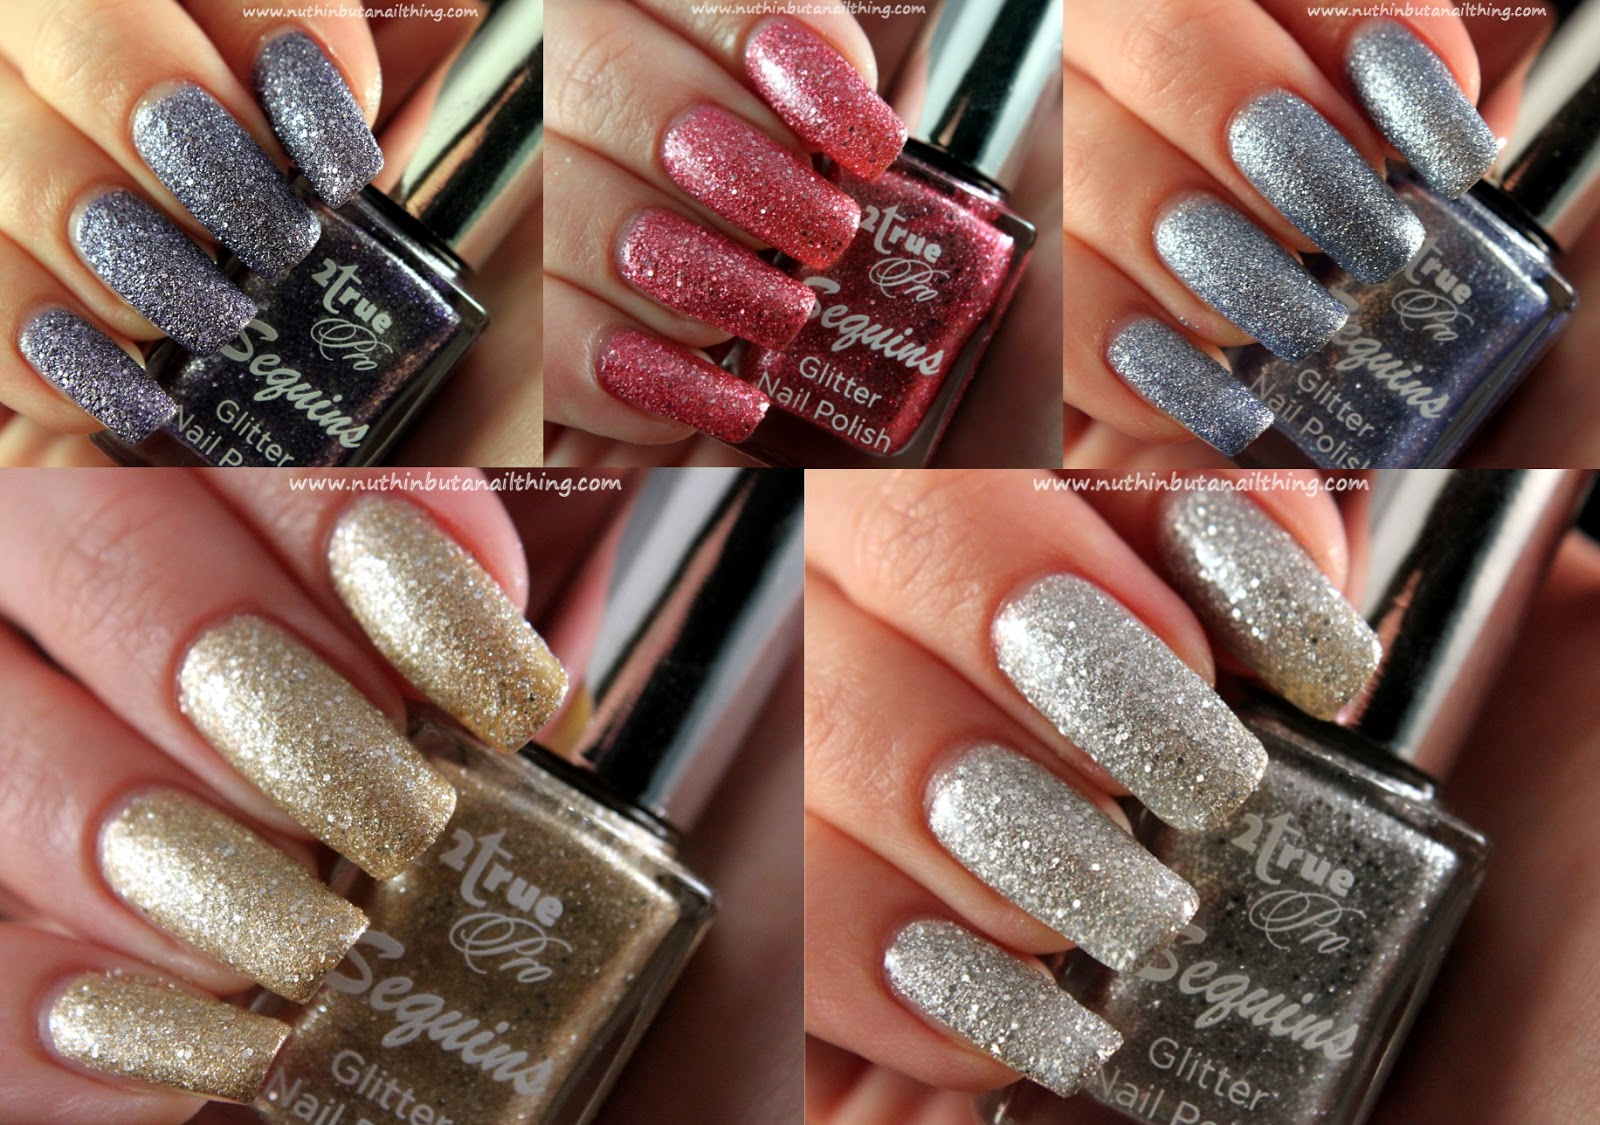 2true Sequins Glitter Full Collection Swatches